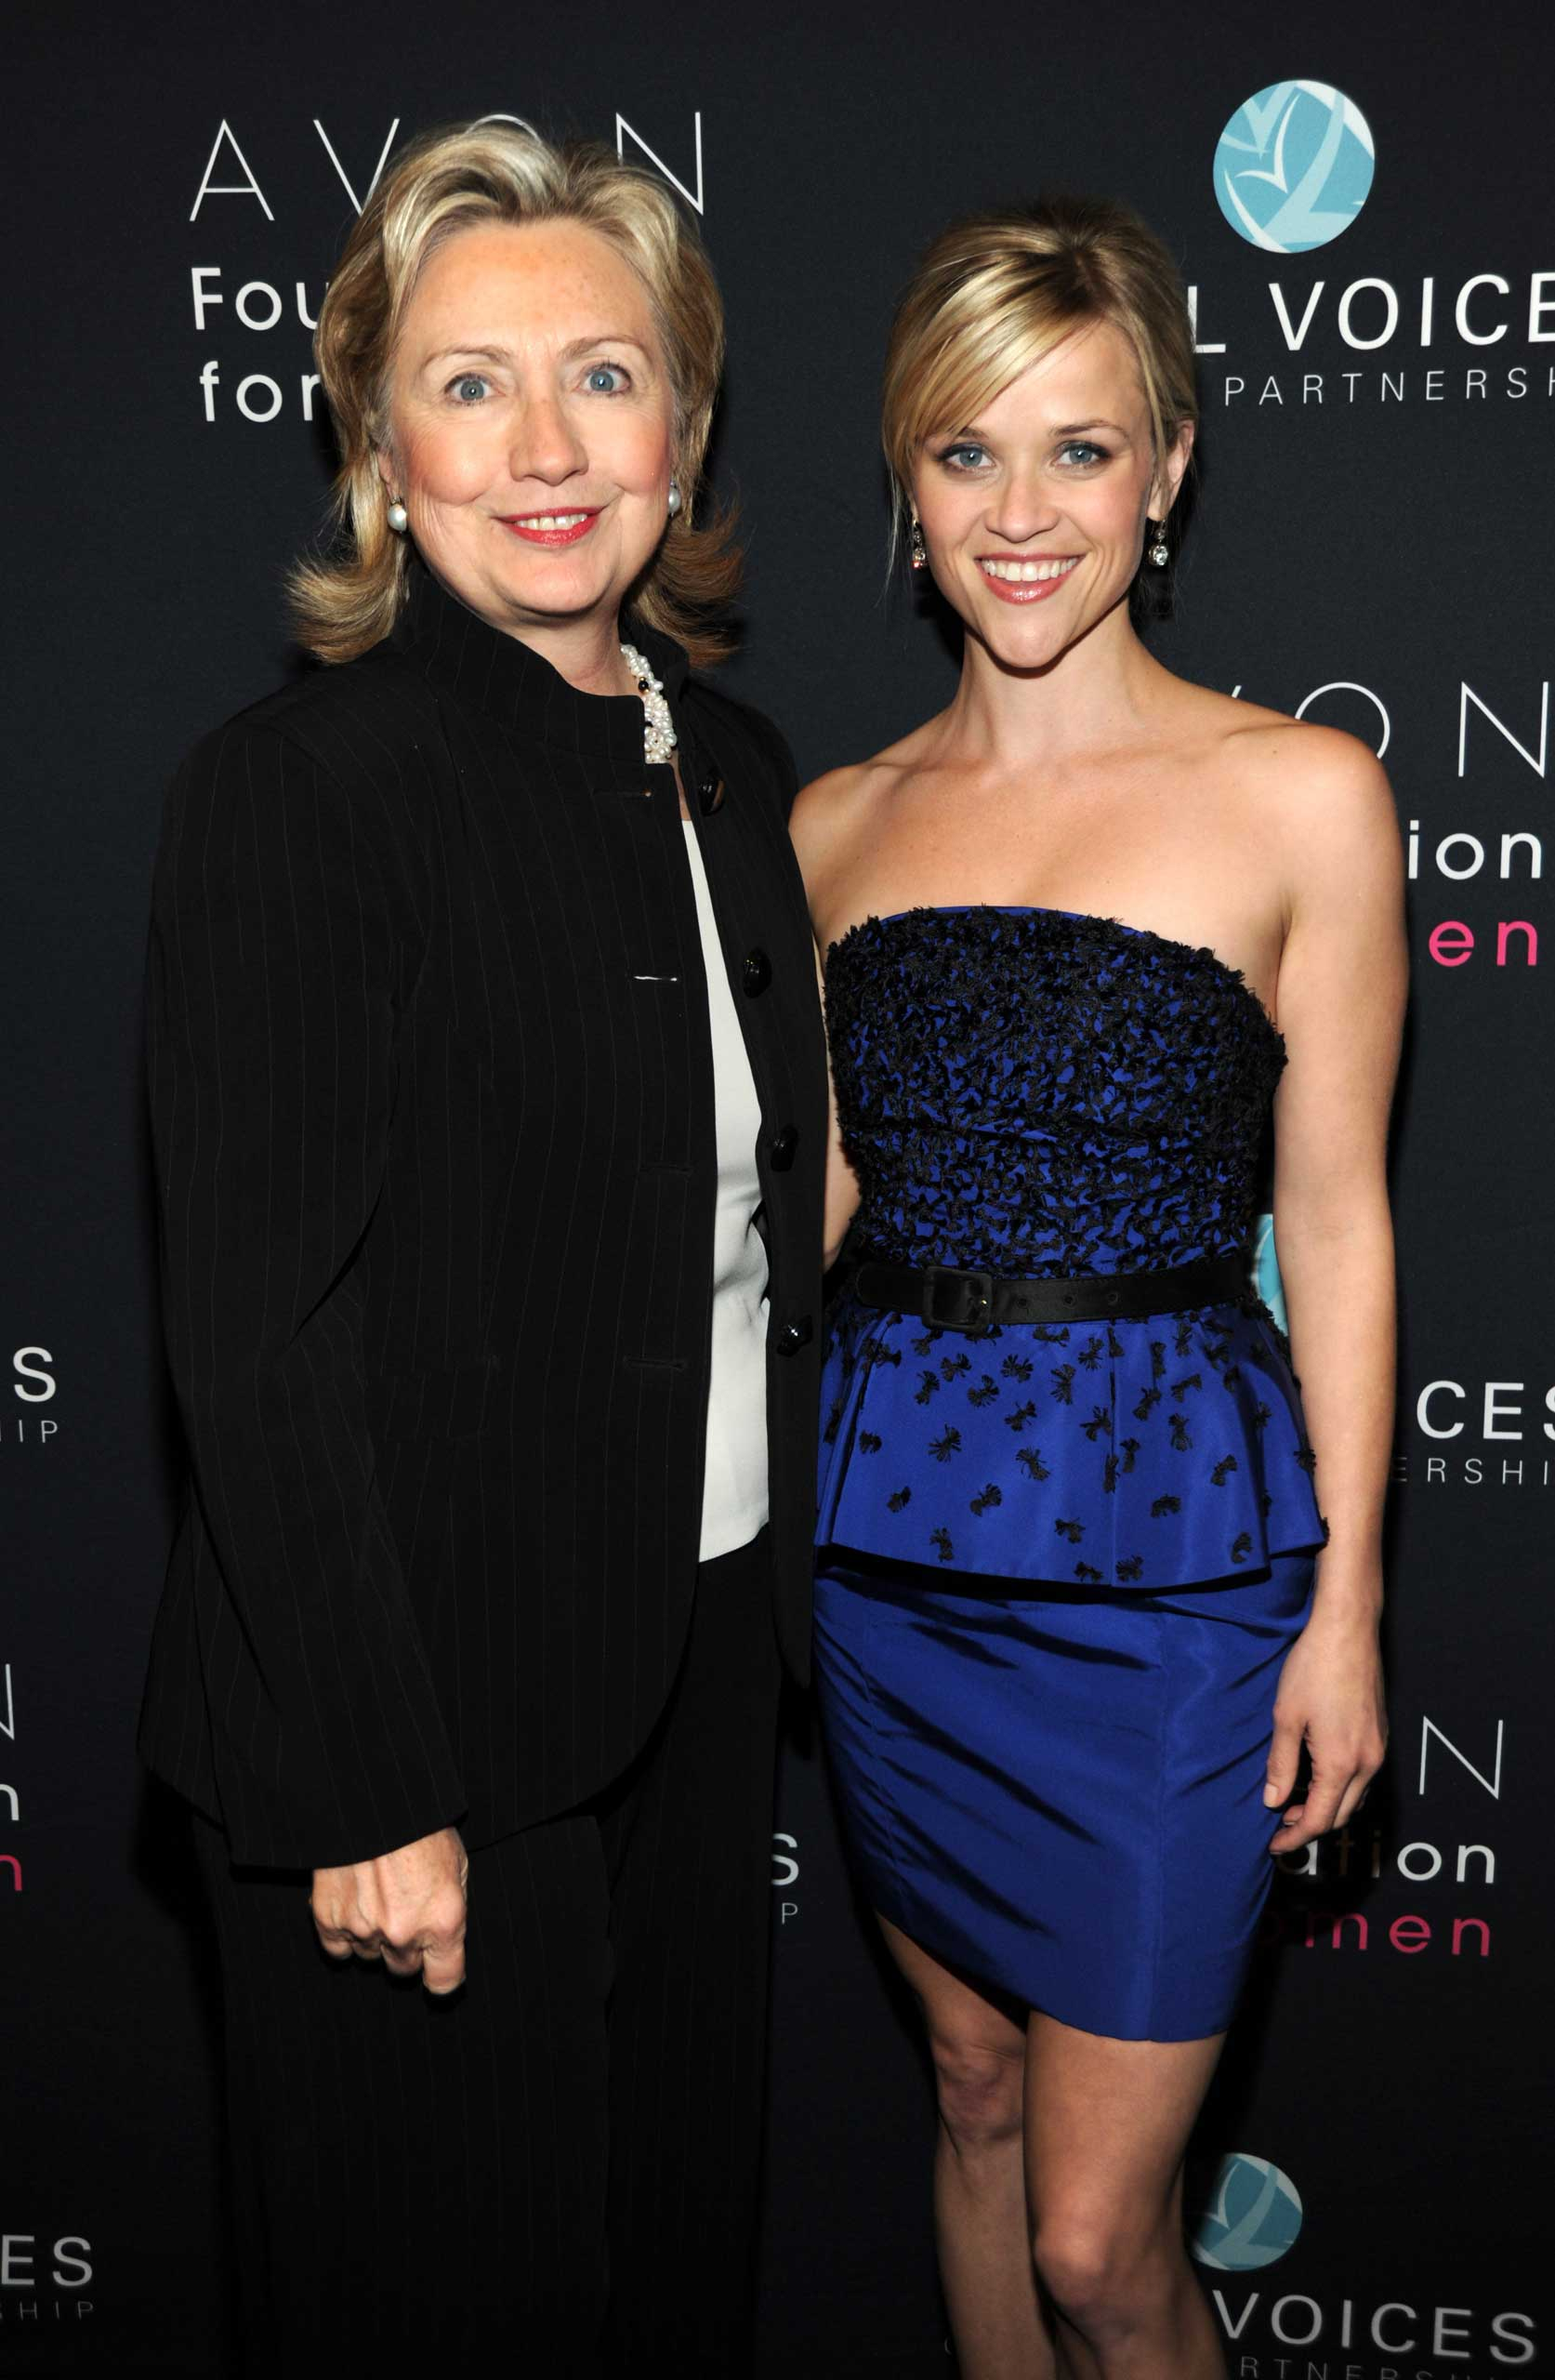 Secretary of State Hillary Clinton and Honorary Chairperson of the Avon Foundation for Women Reese Witherspoon attends Vital Voices 2010 Global Leadership Awards at The Kennedy Center in Washington, DC., on March 10, 2010.